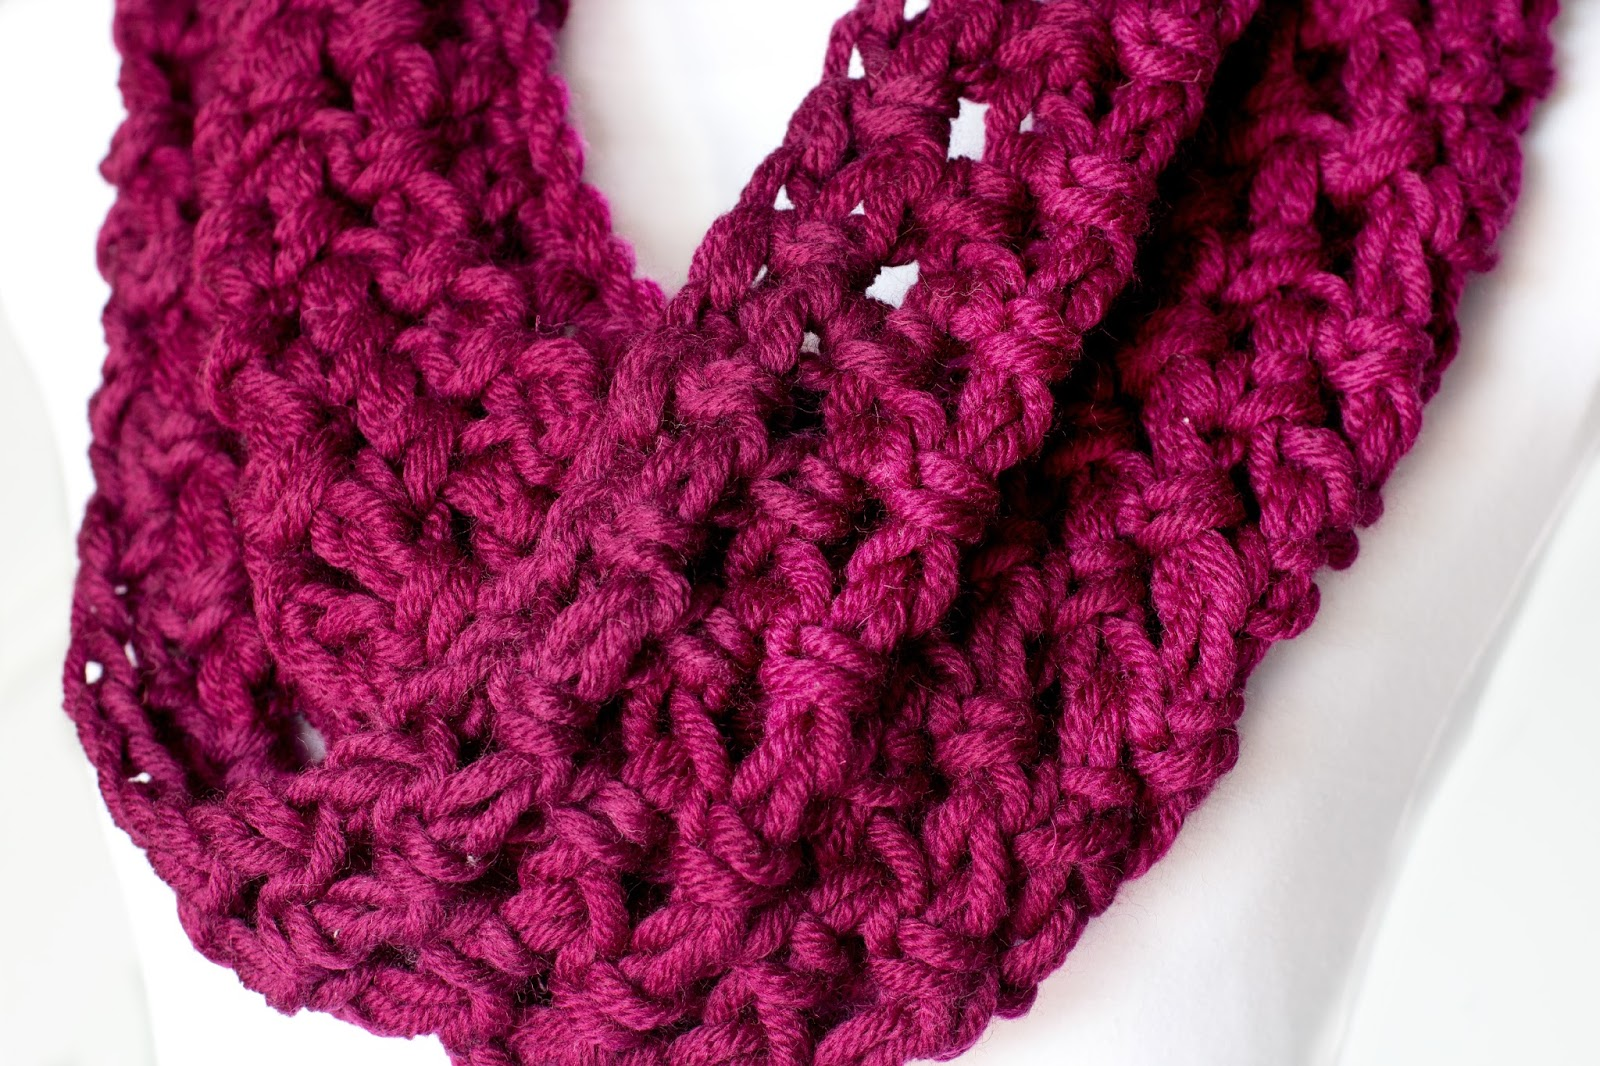 ... Honey Craft, Crochet, Create: Basic Chunky Cowl Crochet Pattern